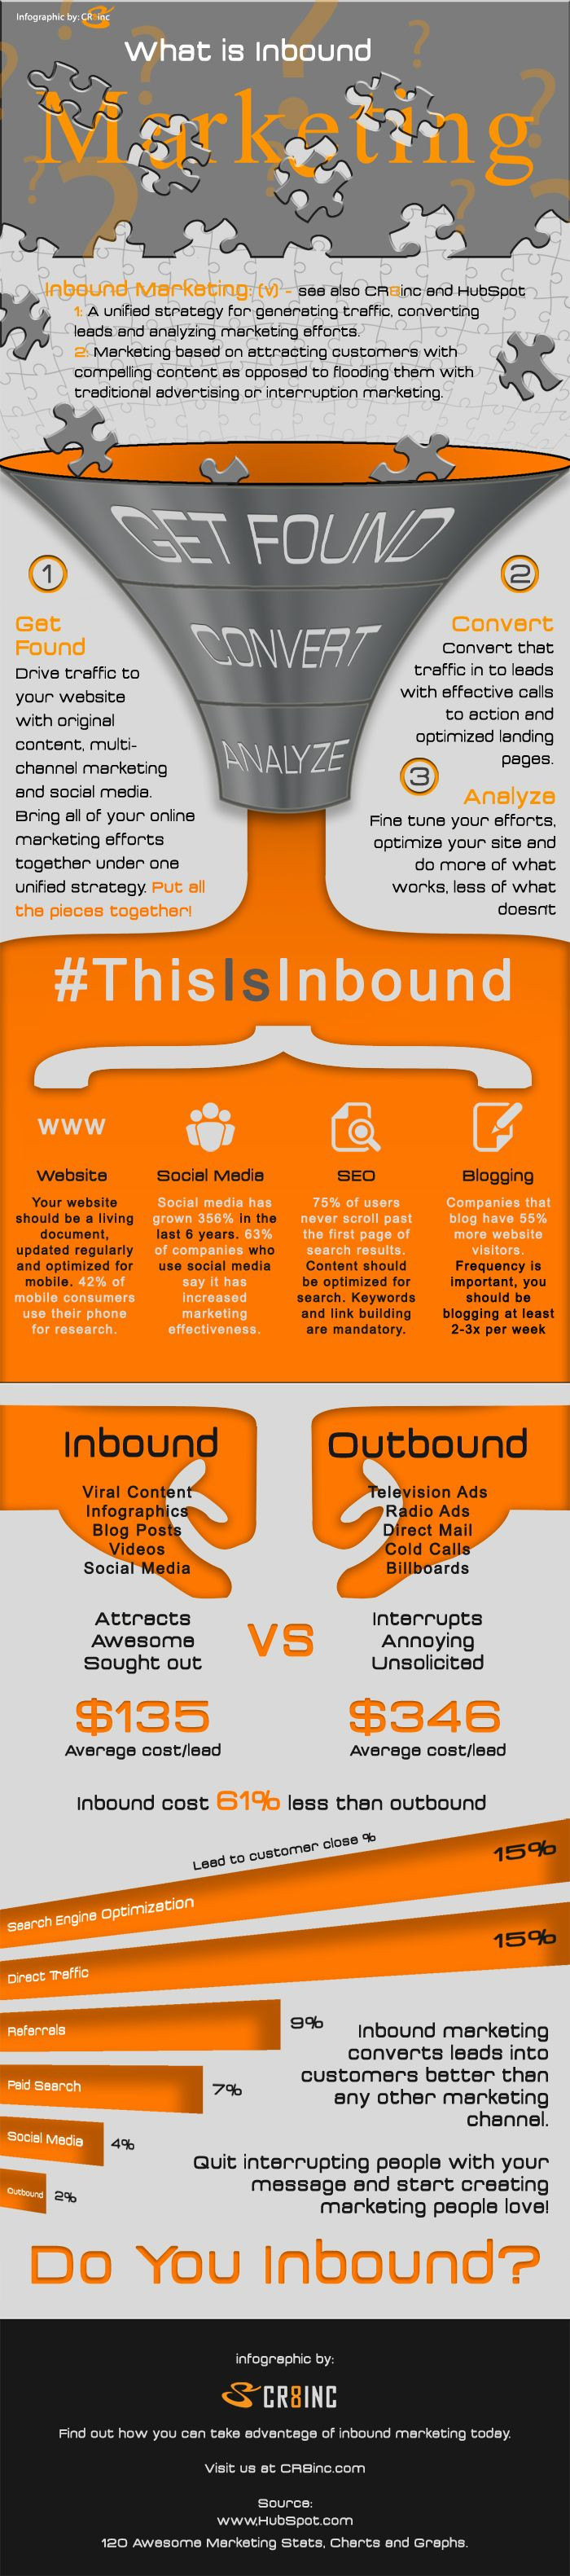 Internet marketing: What is #Inbound Marketing? AND Take this Free Full Lenght Video Training on HOW to Start an Online Business